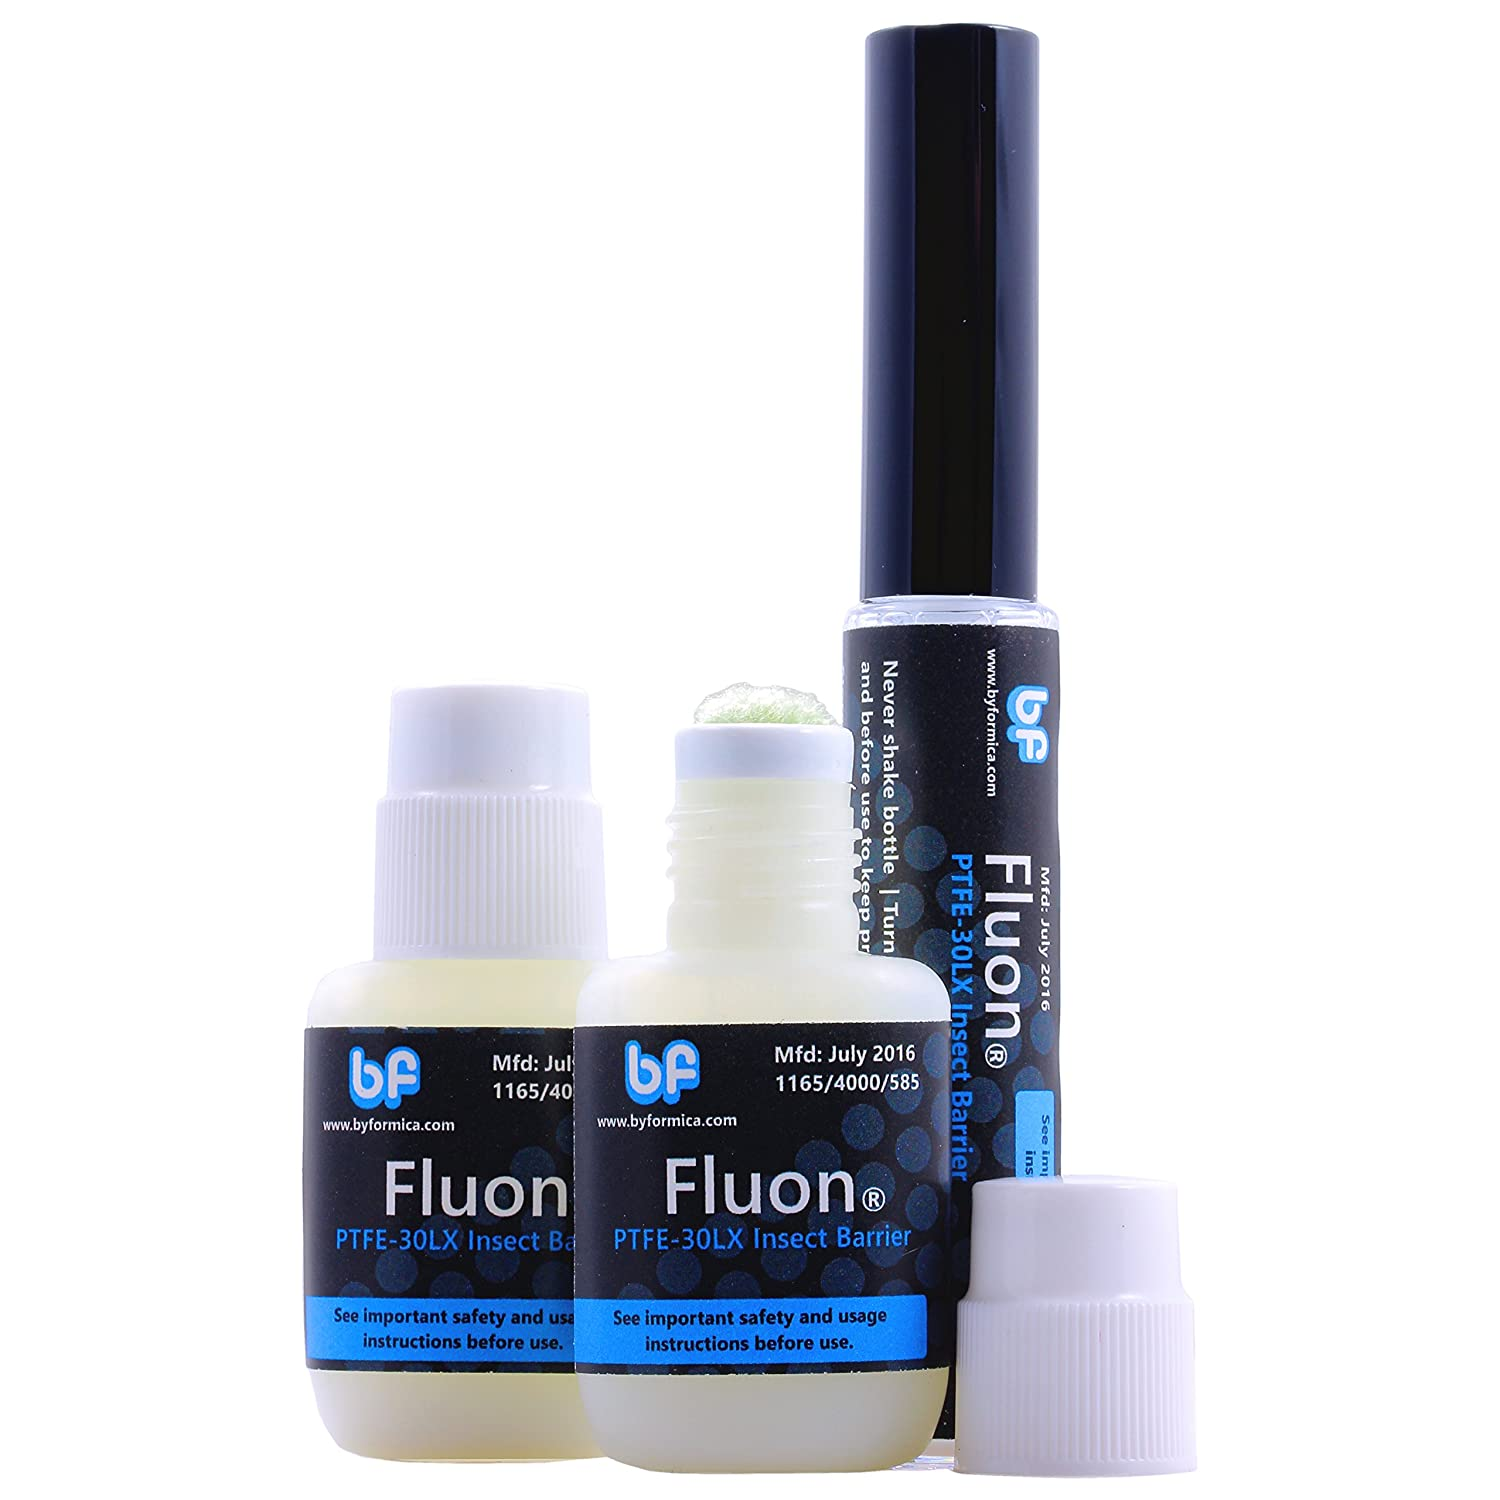 Fluon® Insect Ant Slip Barrier (pack of 3) www.byformica.com